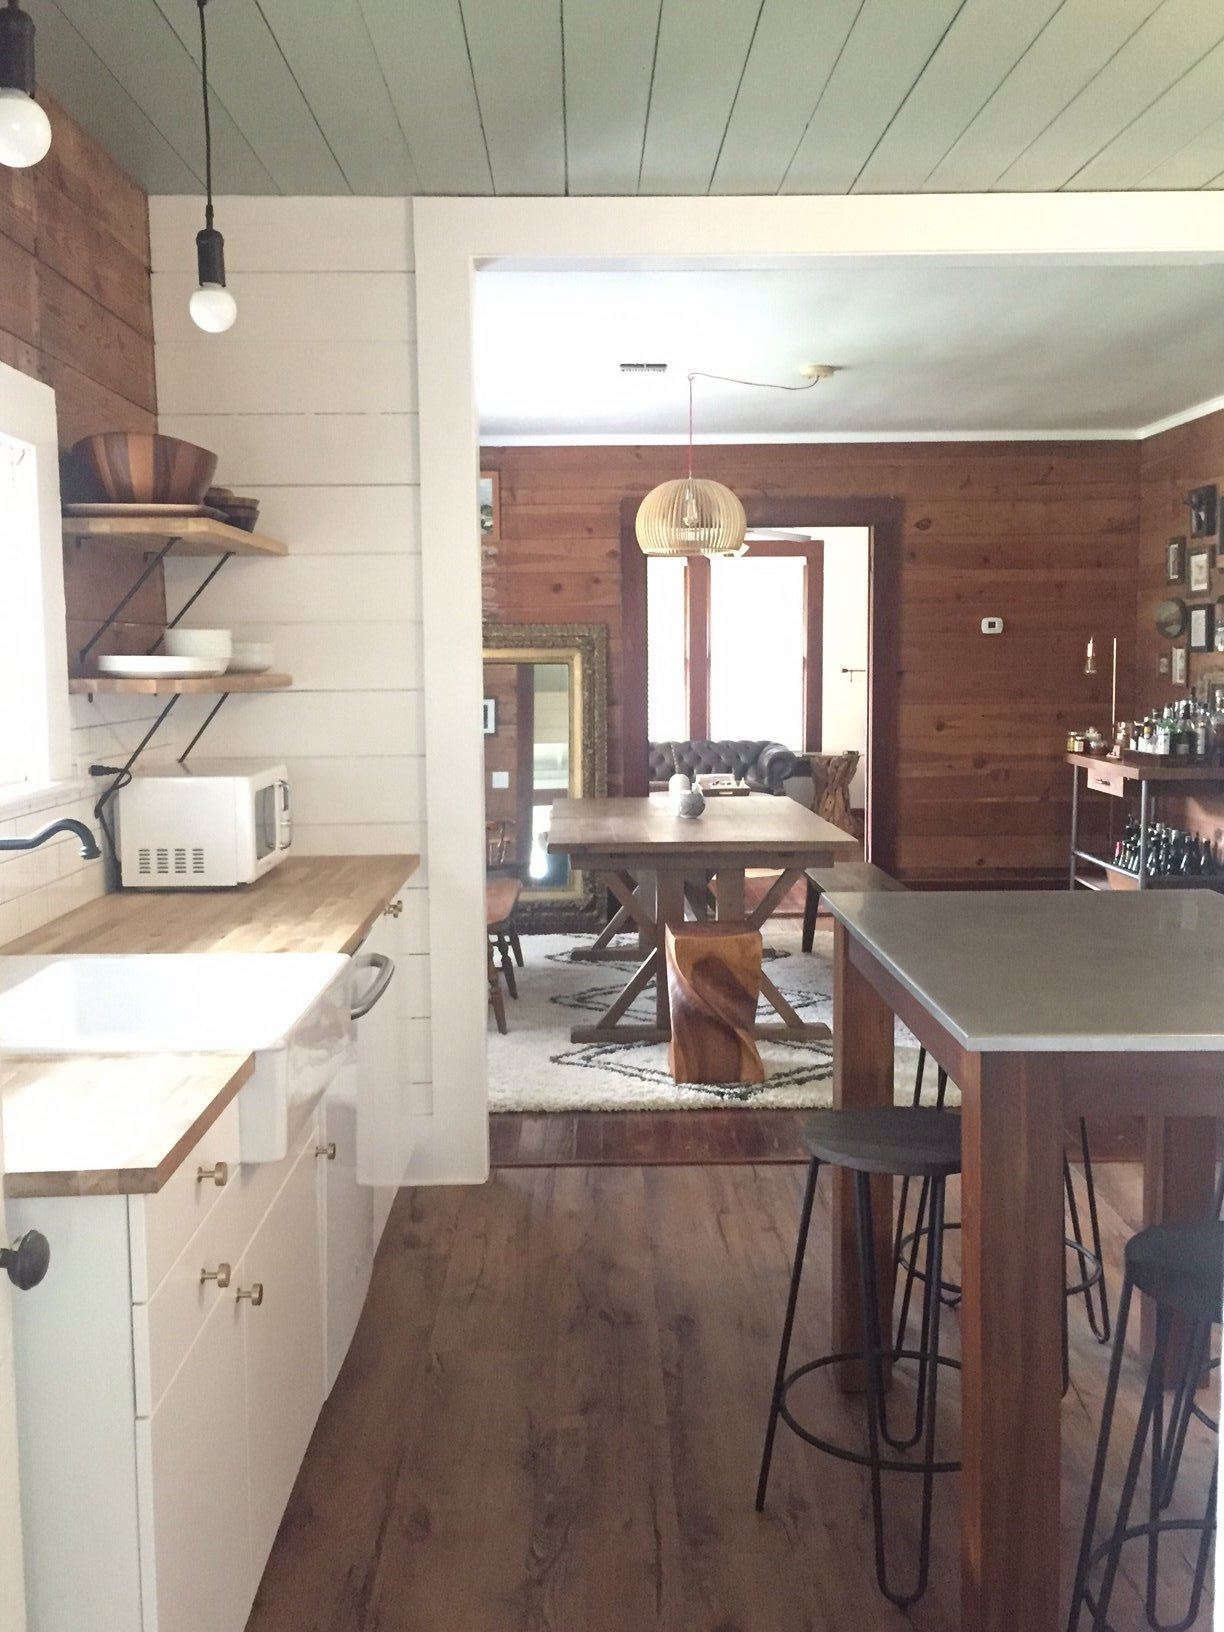 1928 Texas Bungalow Kitchen Remodel